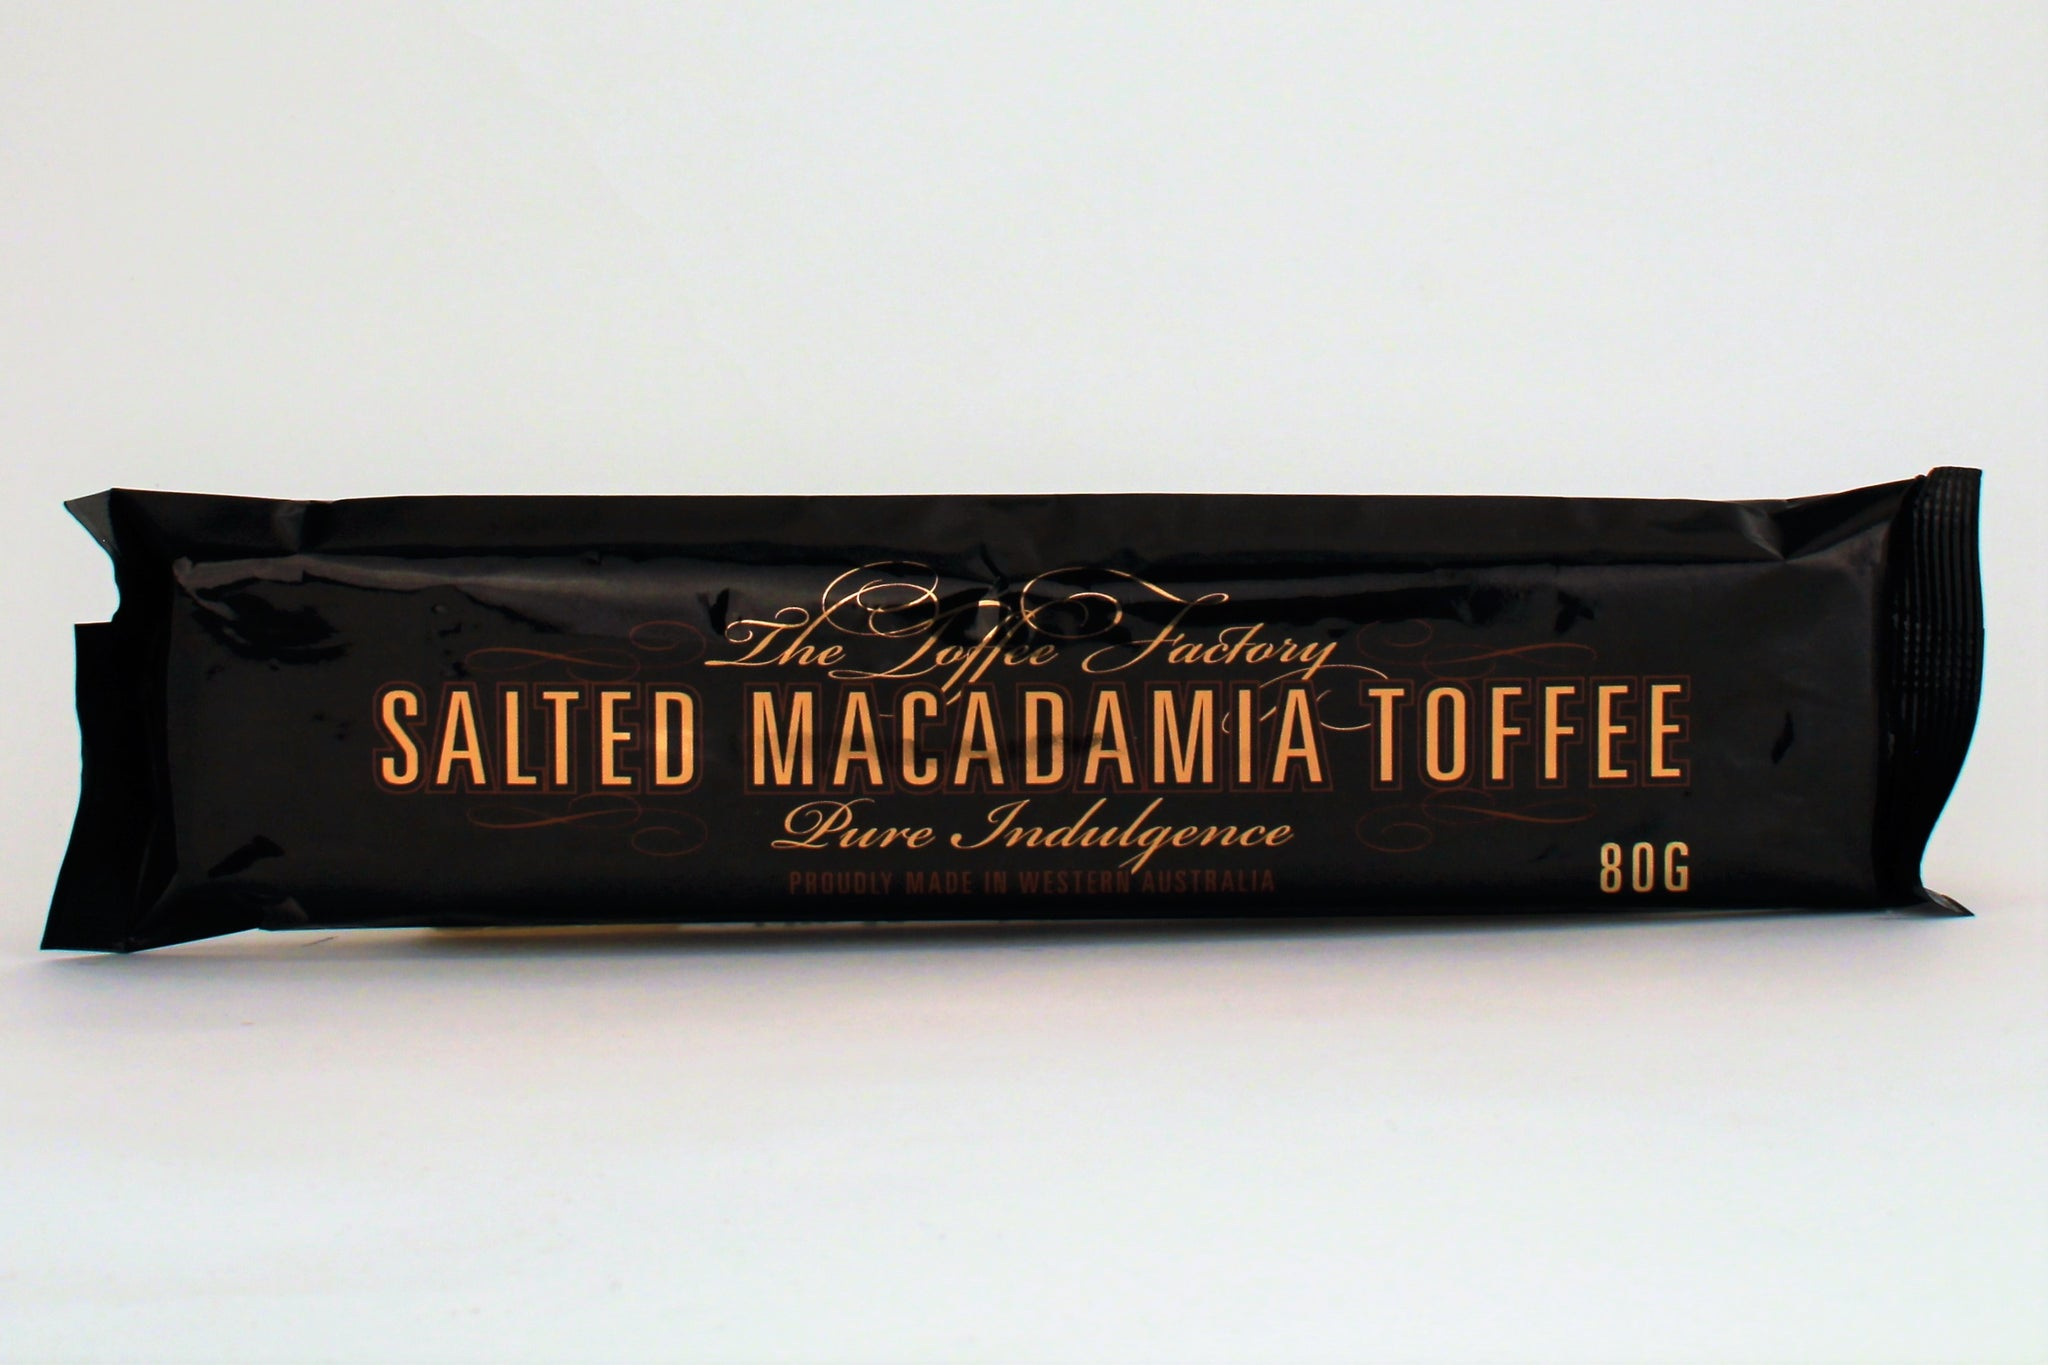 The Toffee Factory Salted Macadamia Toffee 80g